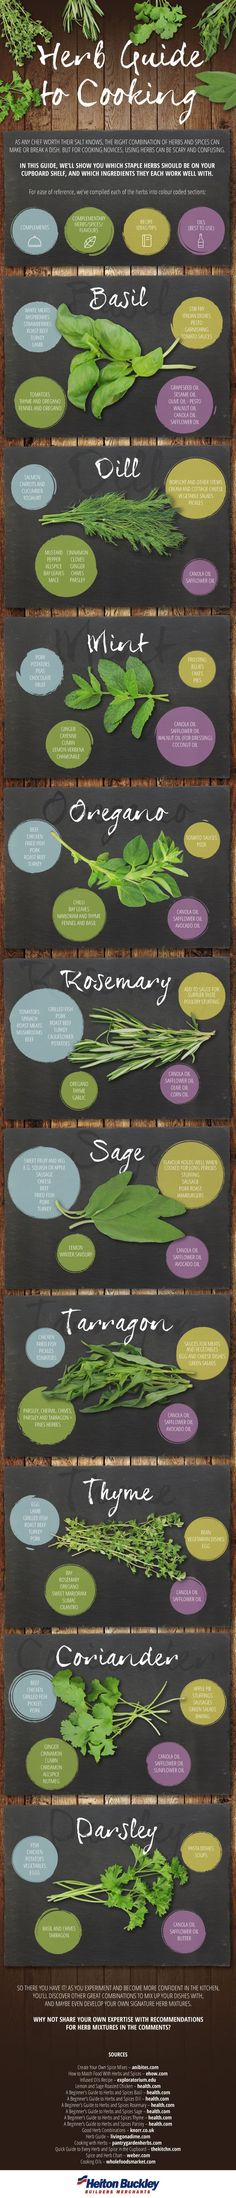 Herb Guide To Cooking #infographic #cooking #herbs